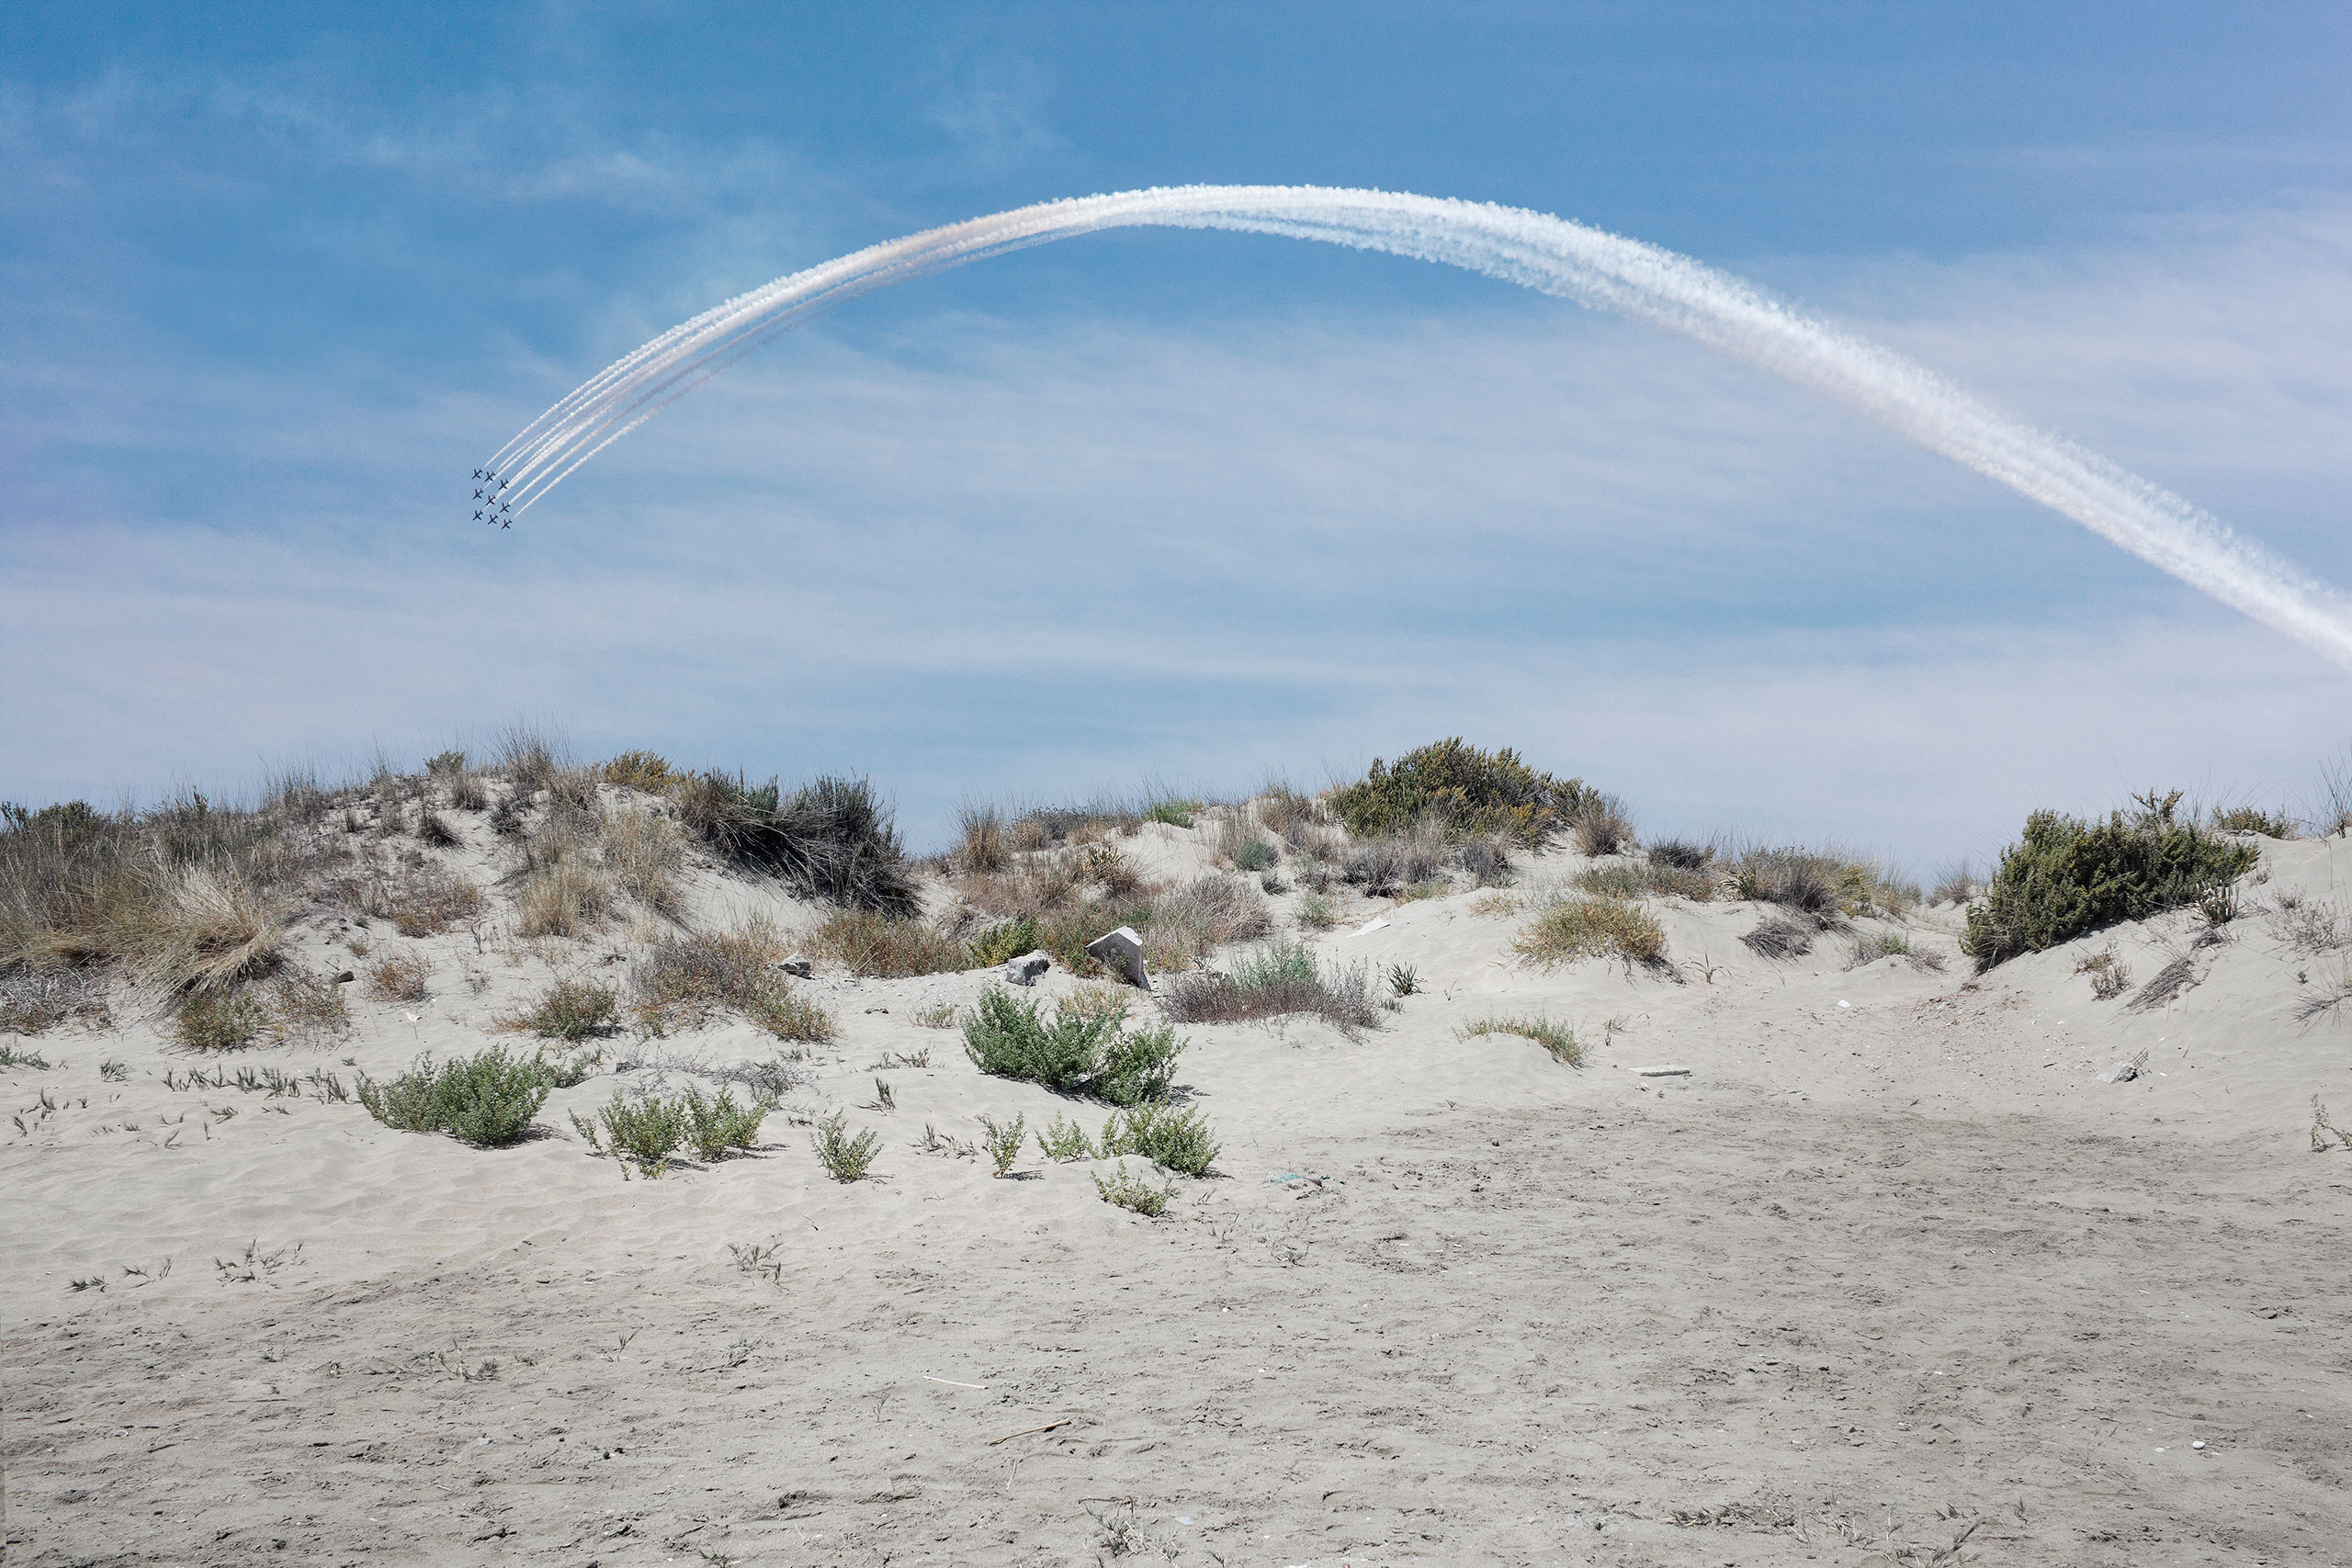 Stelios Kallinikou, Red Arrows rainbow, 2015, dimensions variable, Courtesy of the Artist.